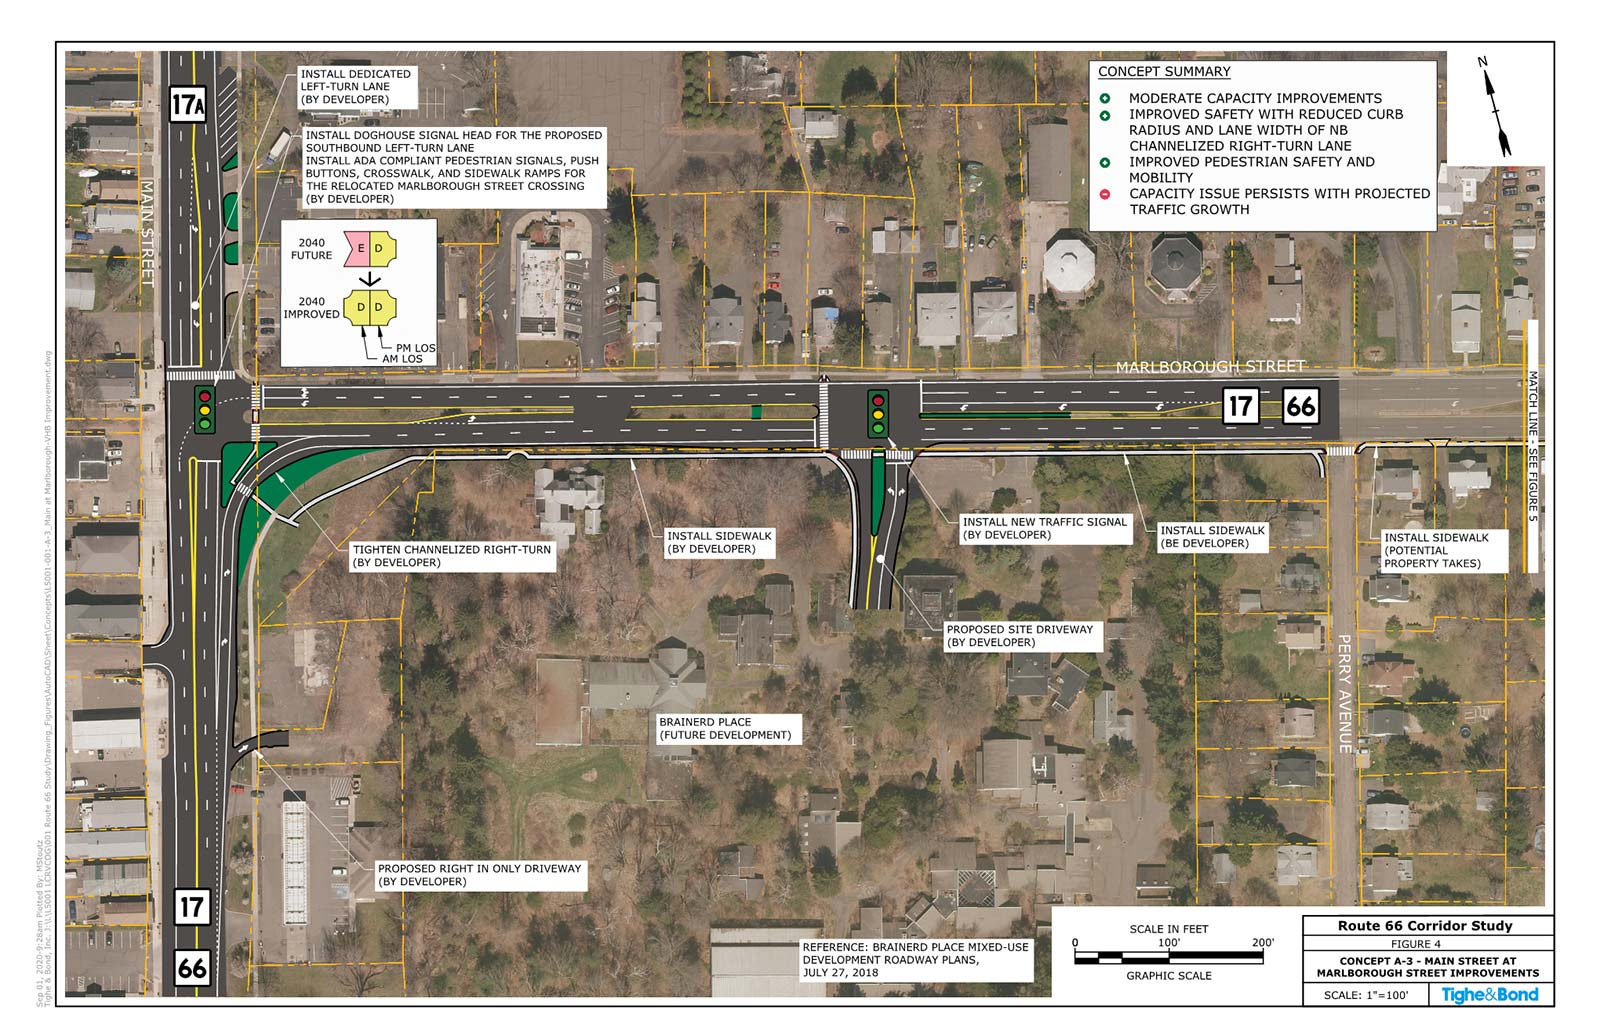 Marlborough Street at Main Street Intersection Improvements (Concept A-3). Route 66 Transportation Study, Portland and East Hampton, CT.